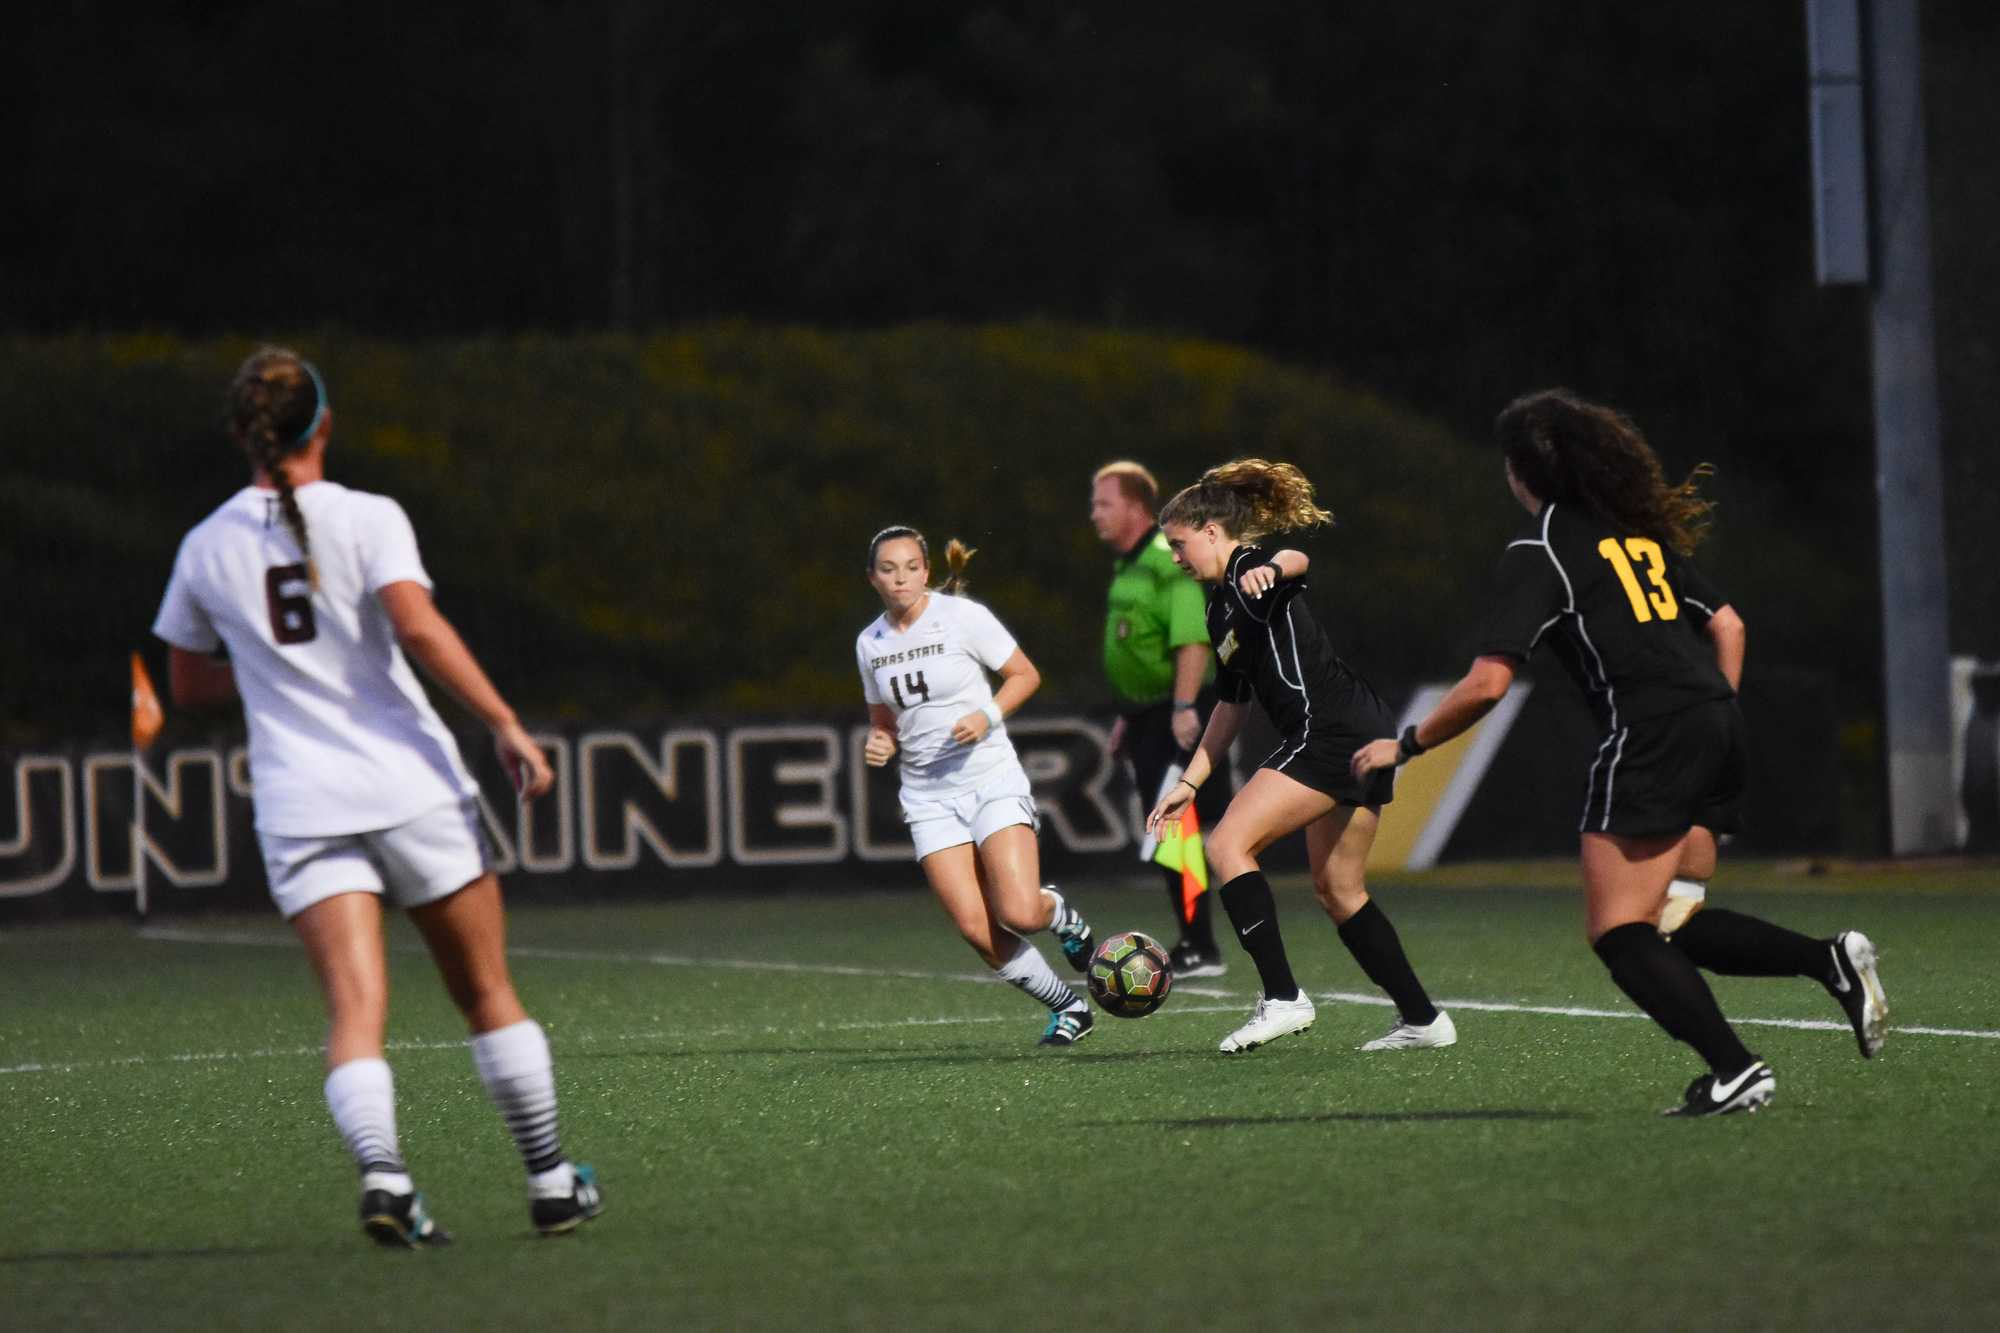 Sophomore defense Alexa Asher and senior midfield Jackie Nieradka against Texas State on September 23, 2016. The game ended in a tie 1-1. Photo by Olivia Lepard